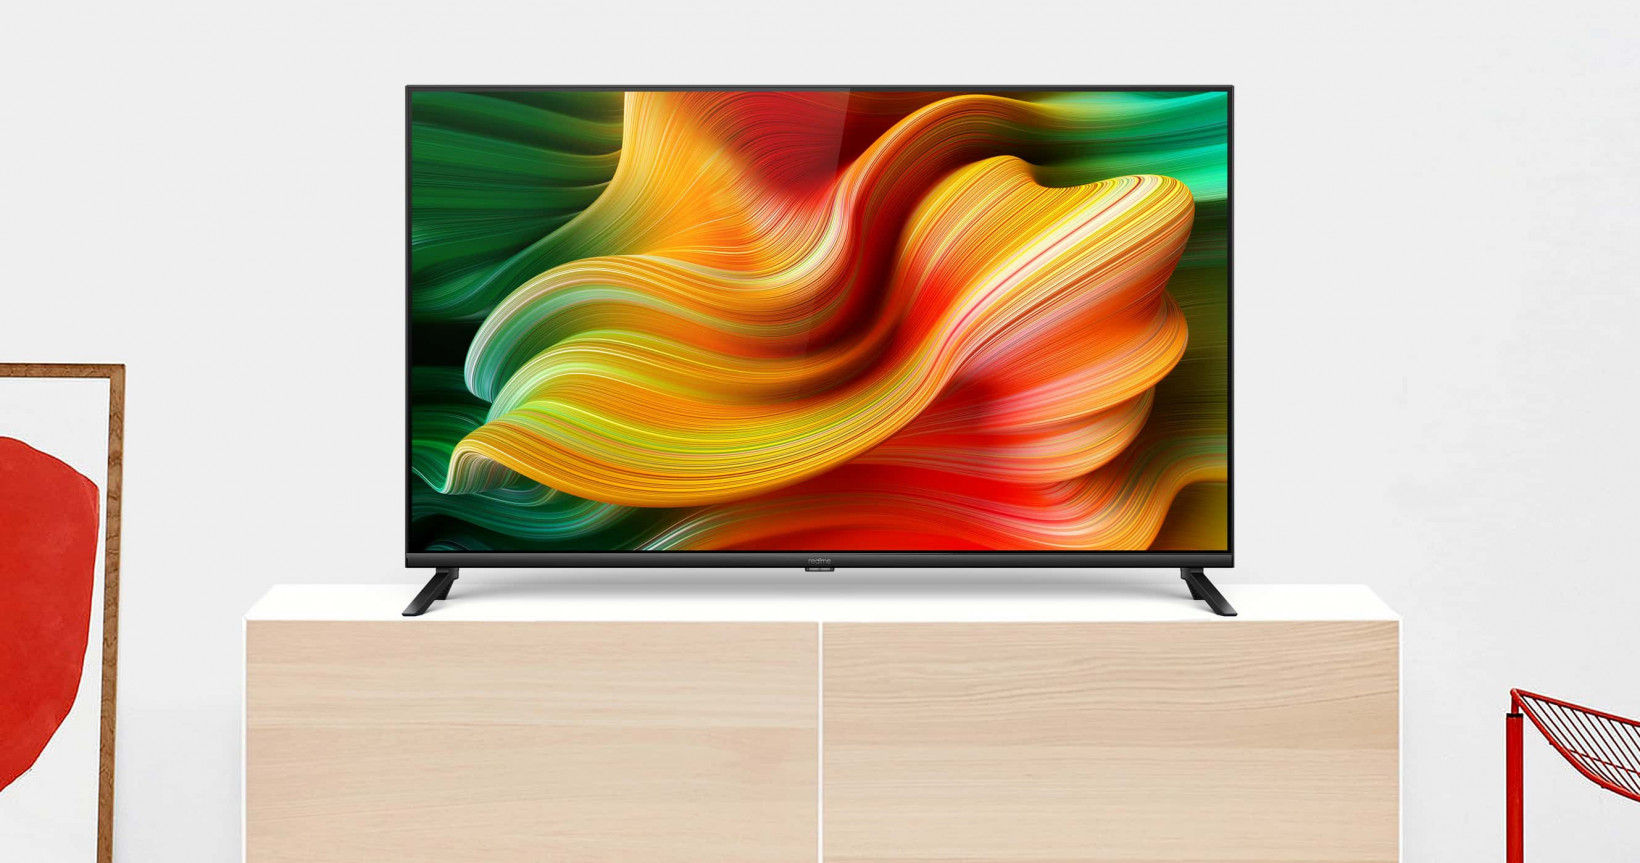 Realme, an Oppo sub-brand, does TVs too